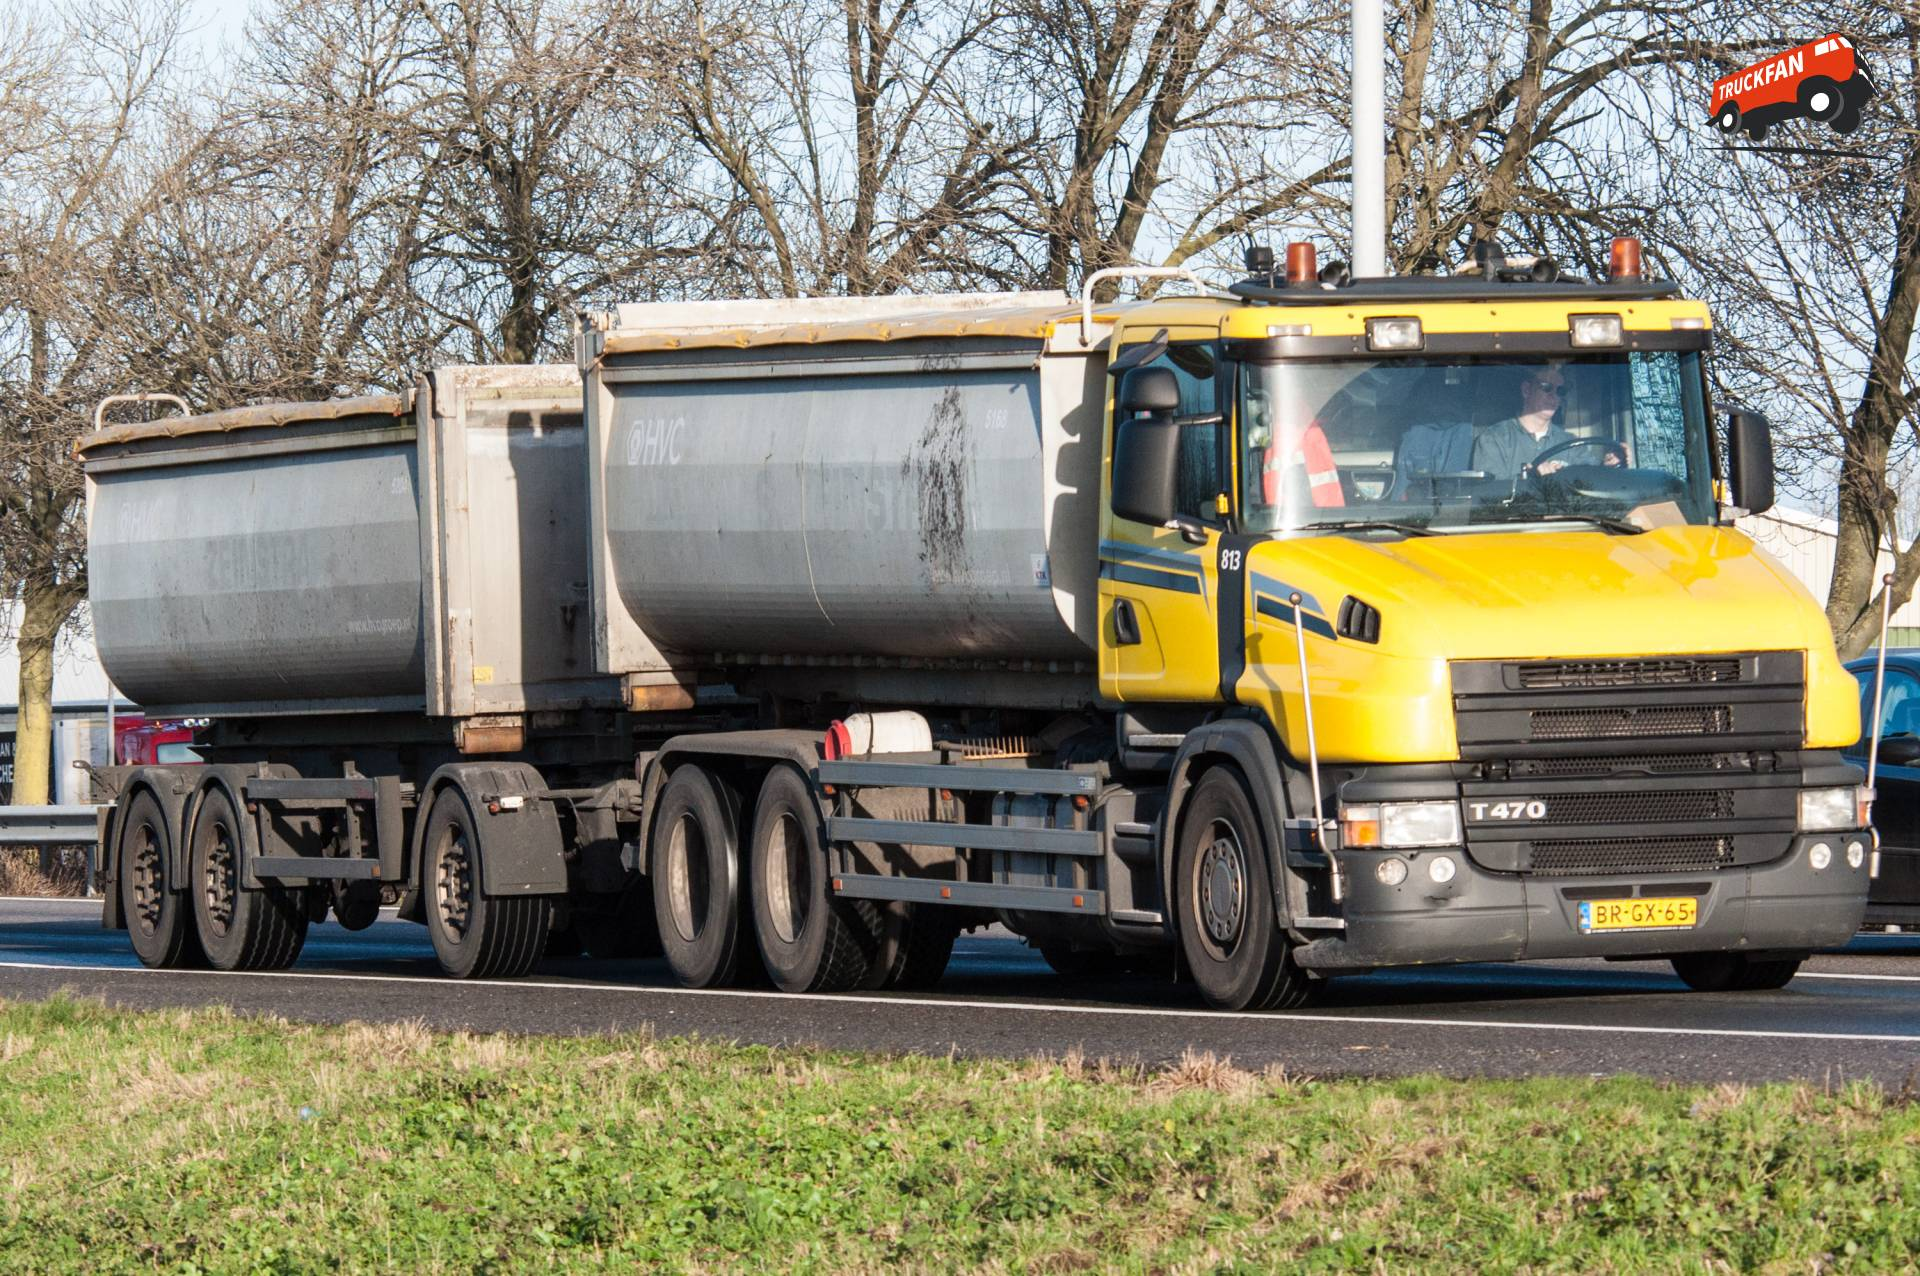 Scania T470